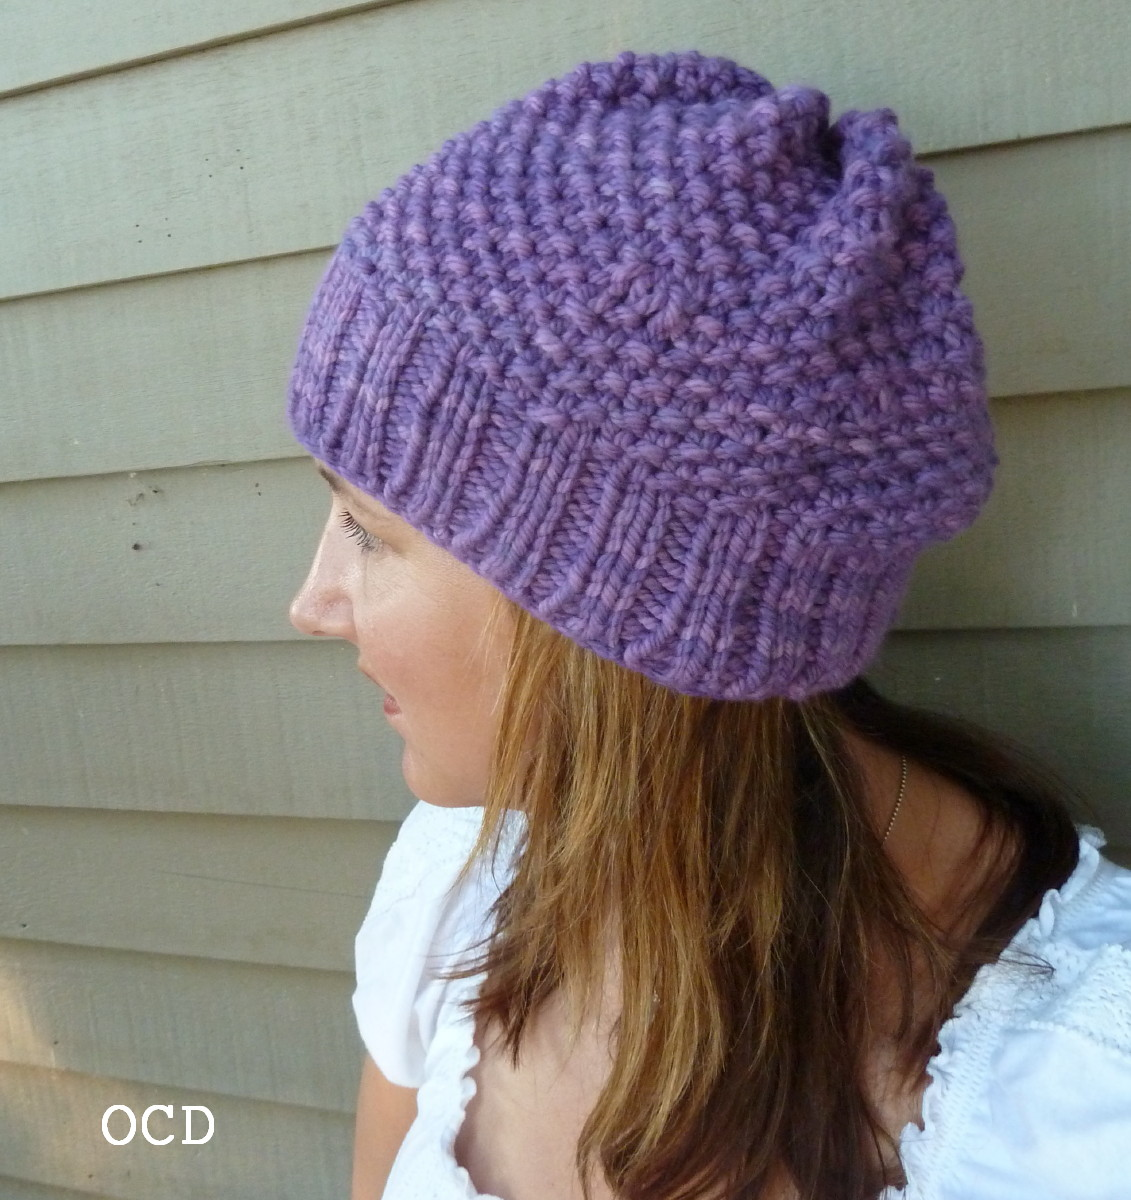 ocd  obsessive crafting disorder  Christmas present  1 done! 8217d5beaed